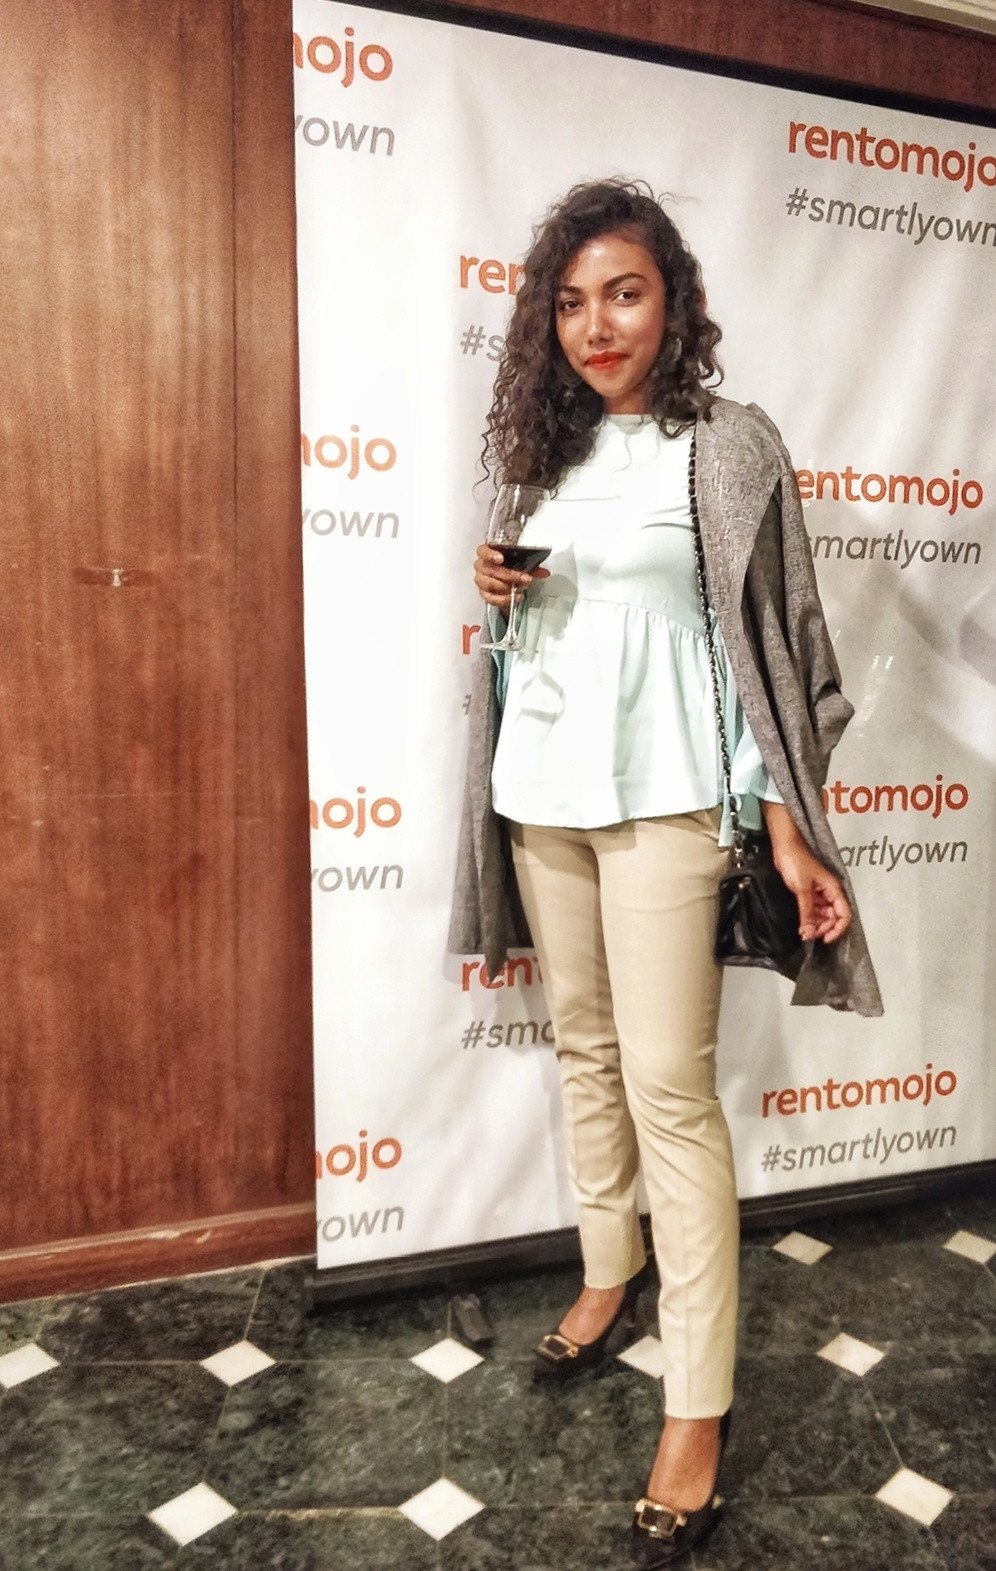 The Curly Mode, Rentomojo